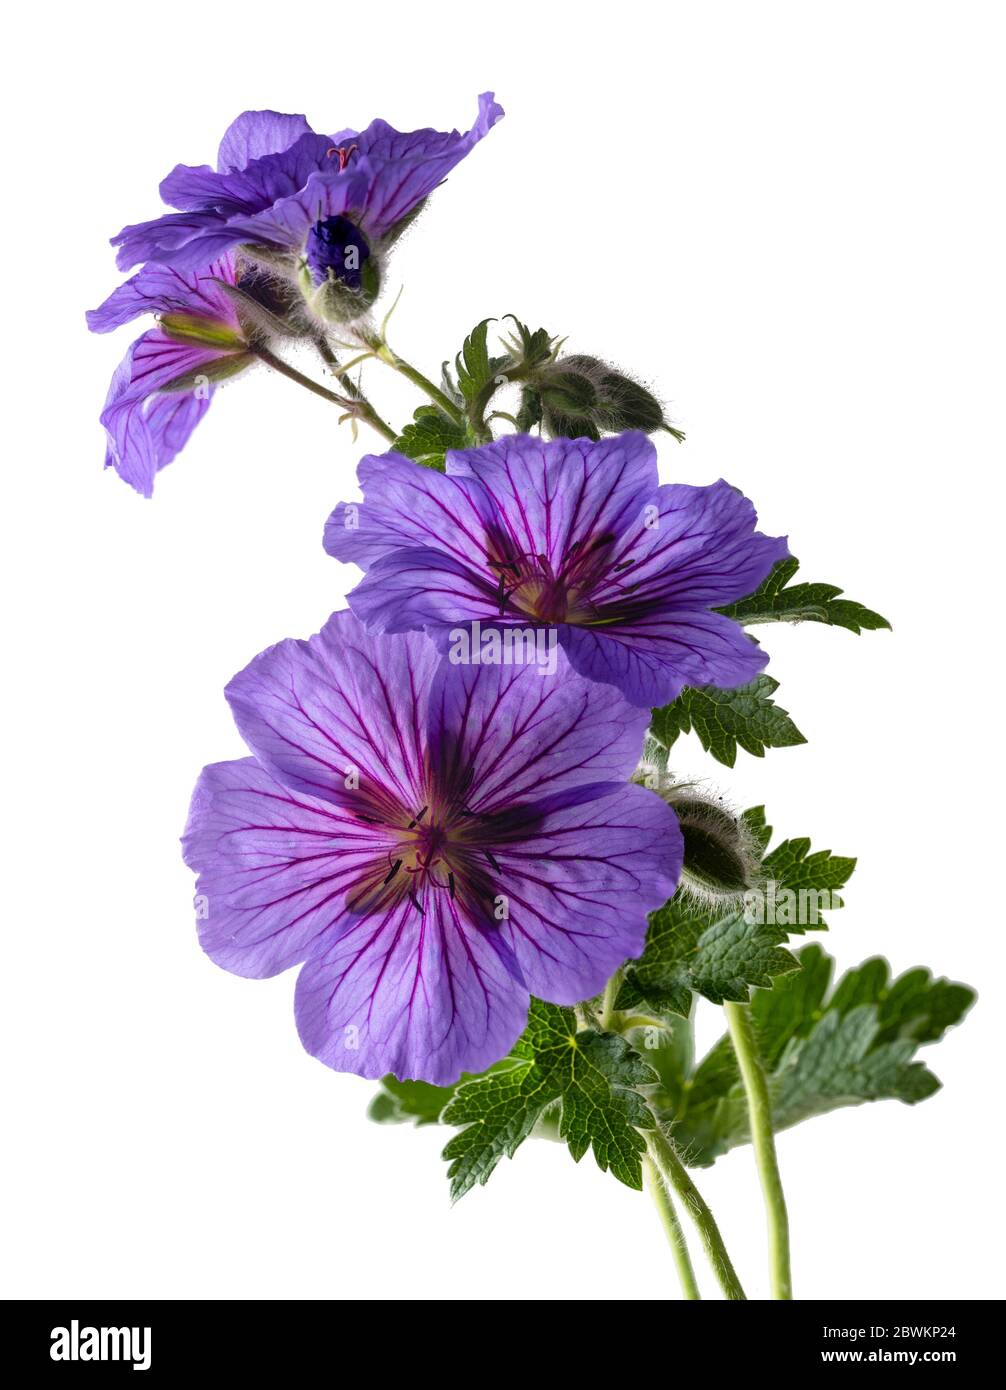 Late spring flowers of the hardy perennial Geranium x magnificum on a white background Stock Photo